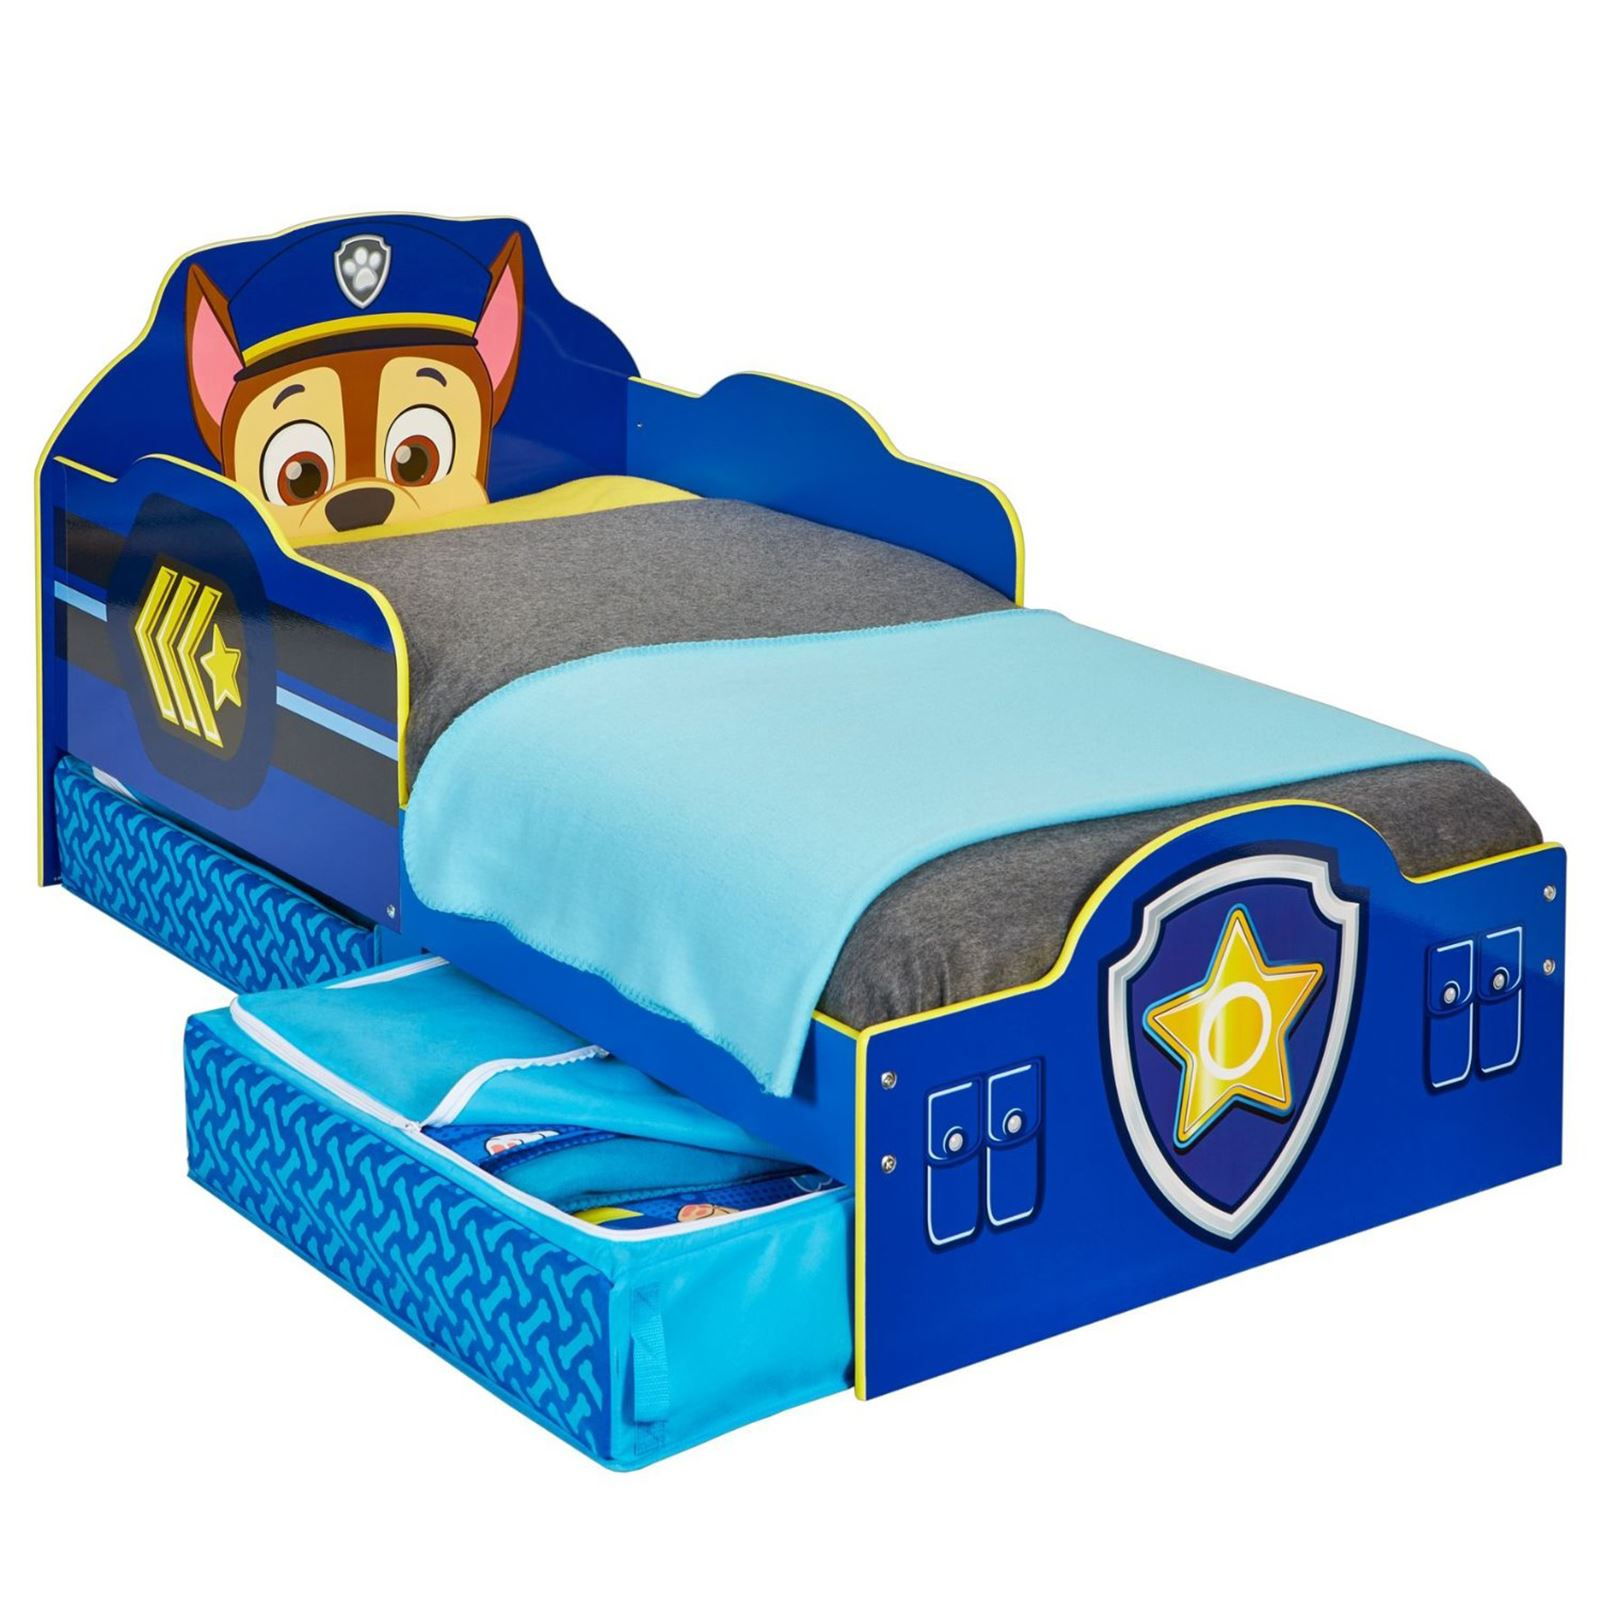 official paw patrol chase toddler bed with storage mdf new. Black Bedroom Furniture Sets. Home Design Ideas